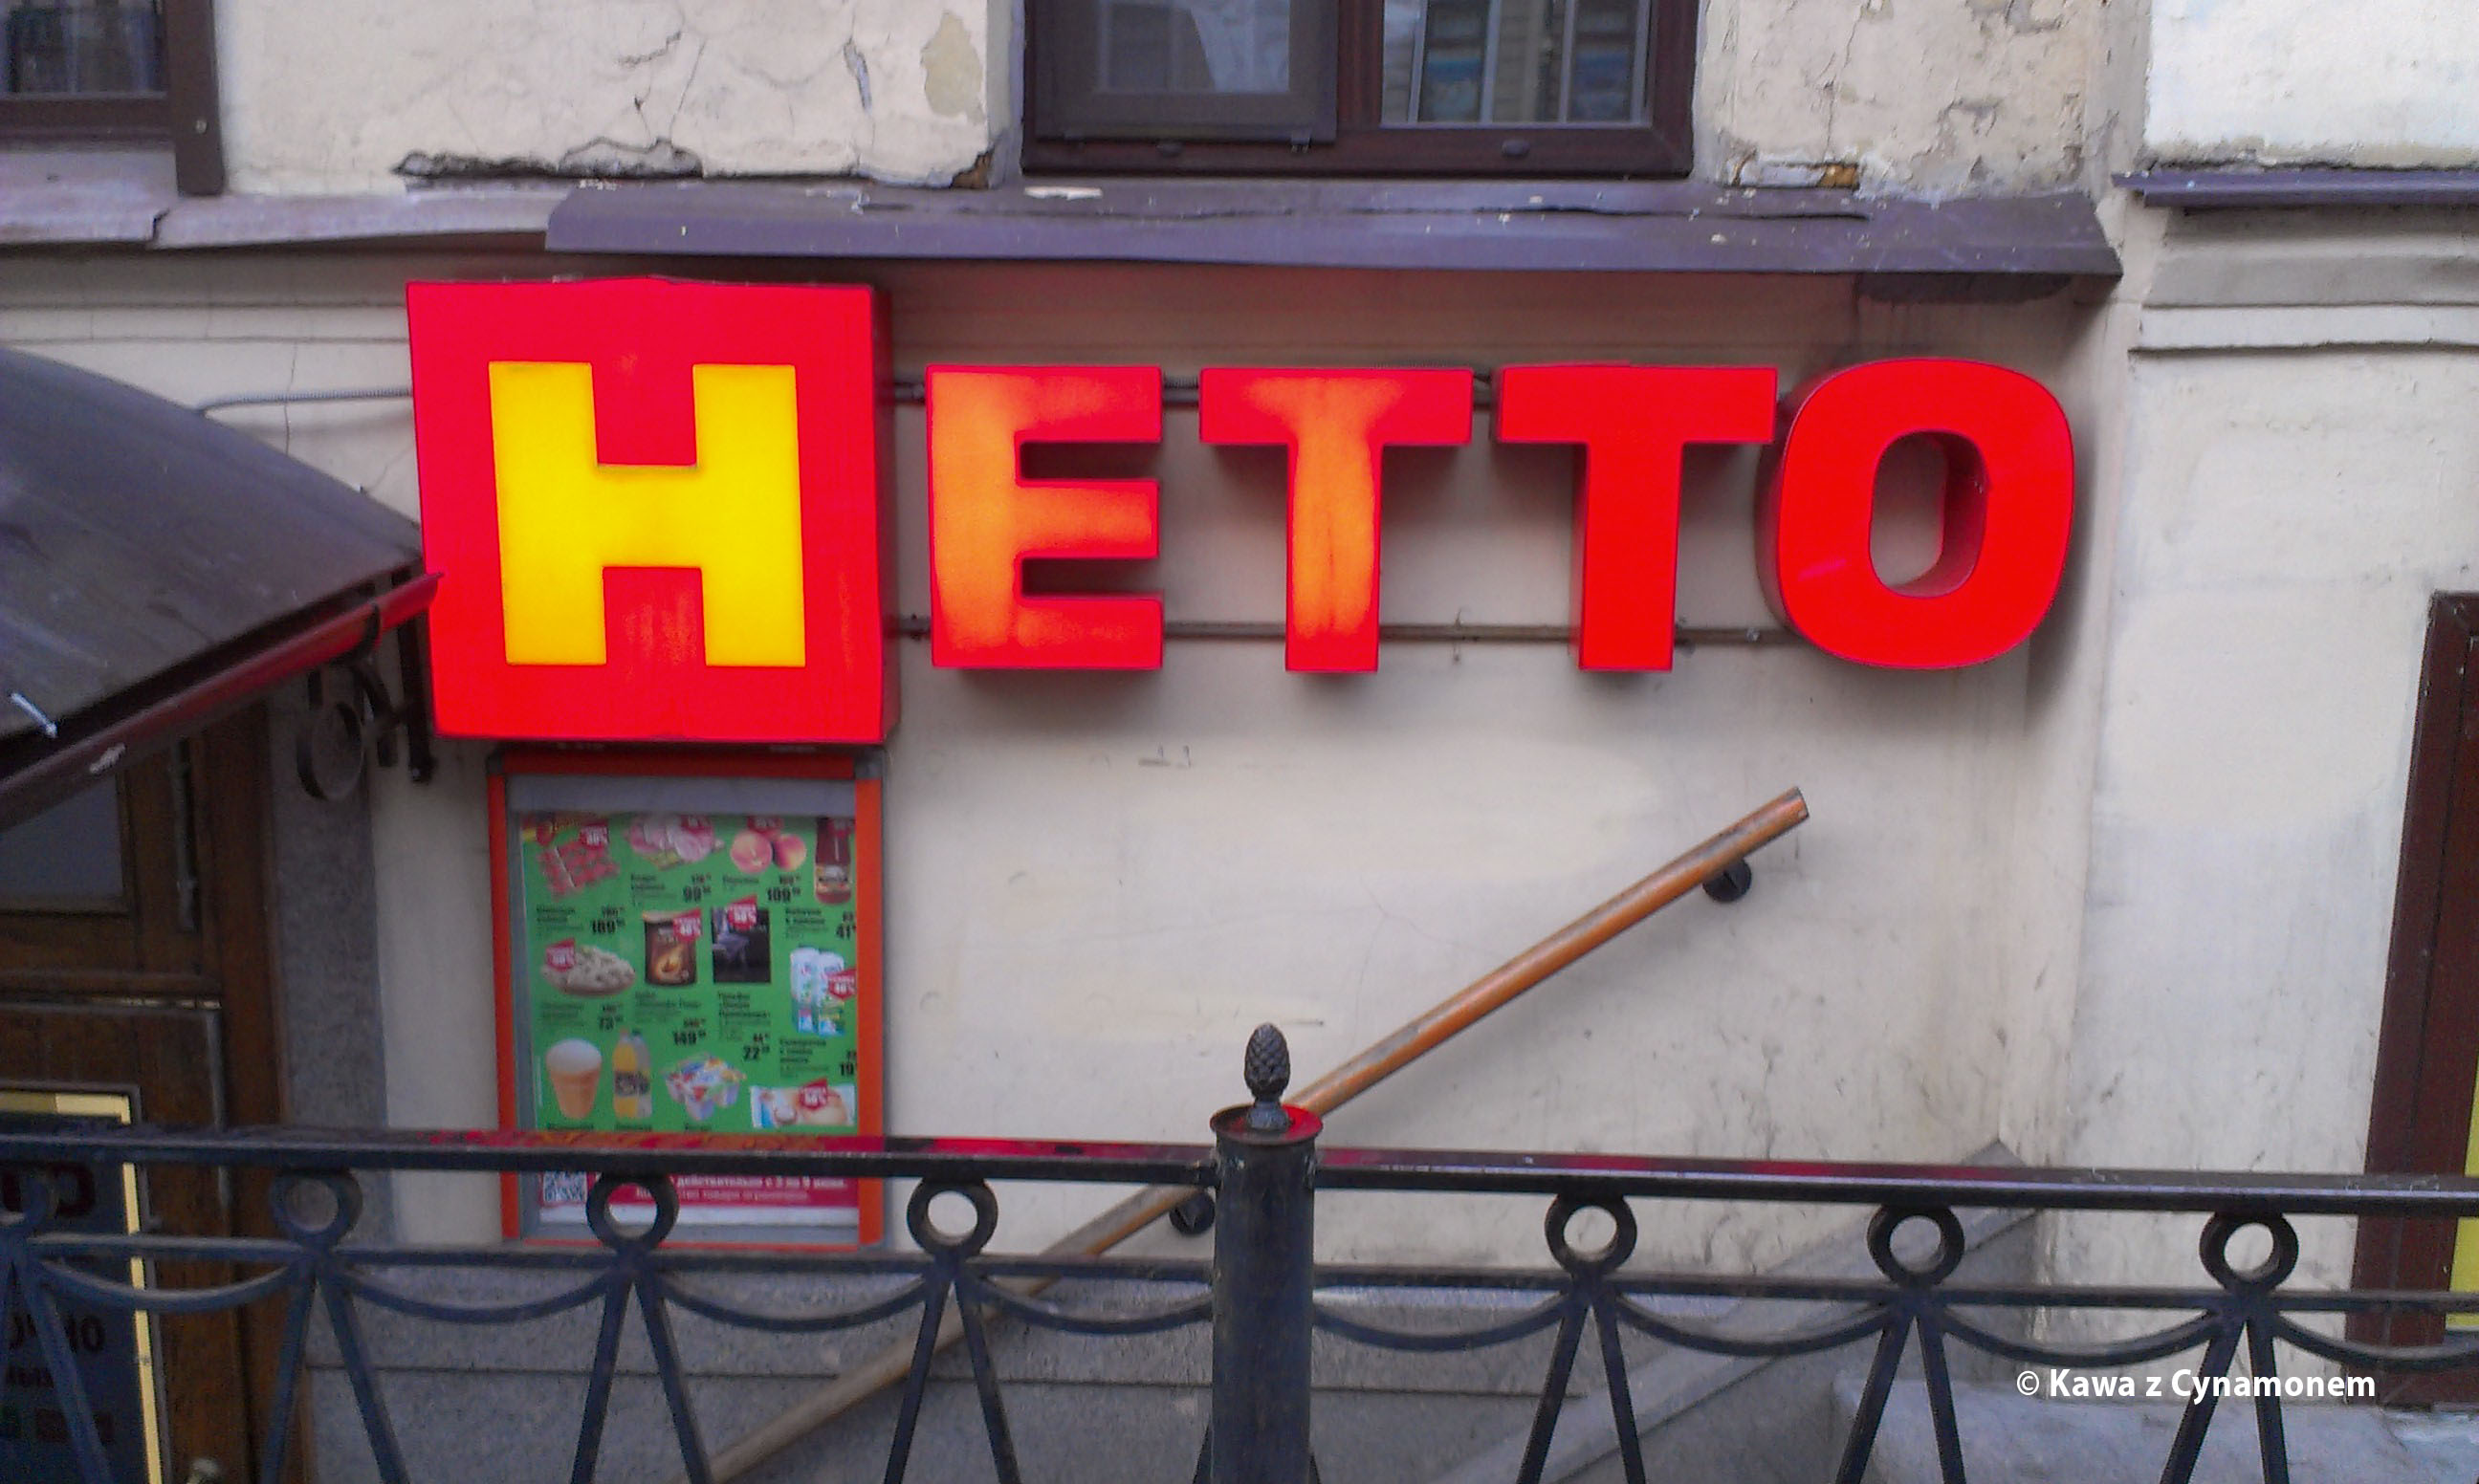 Petersburg - Netto